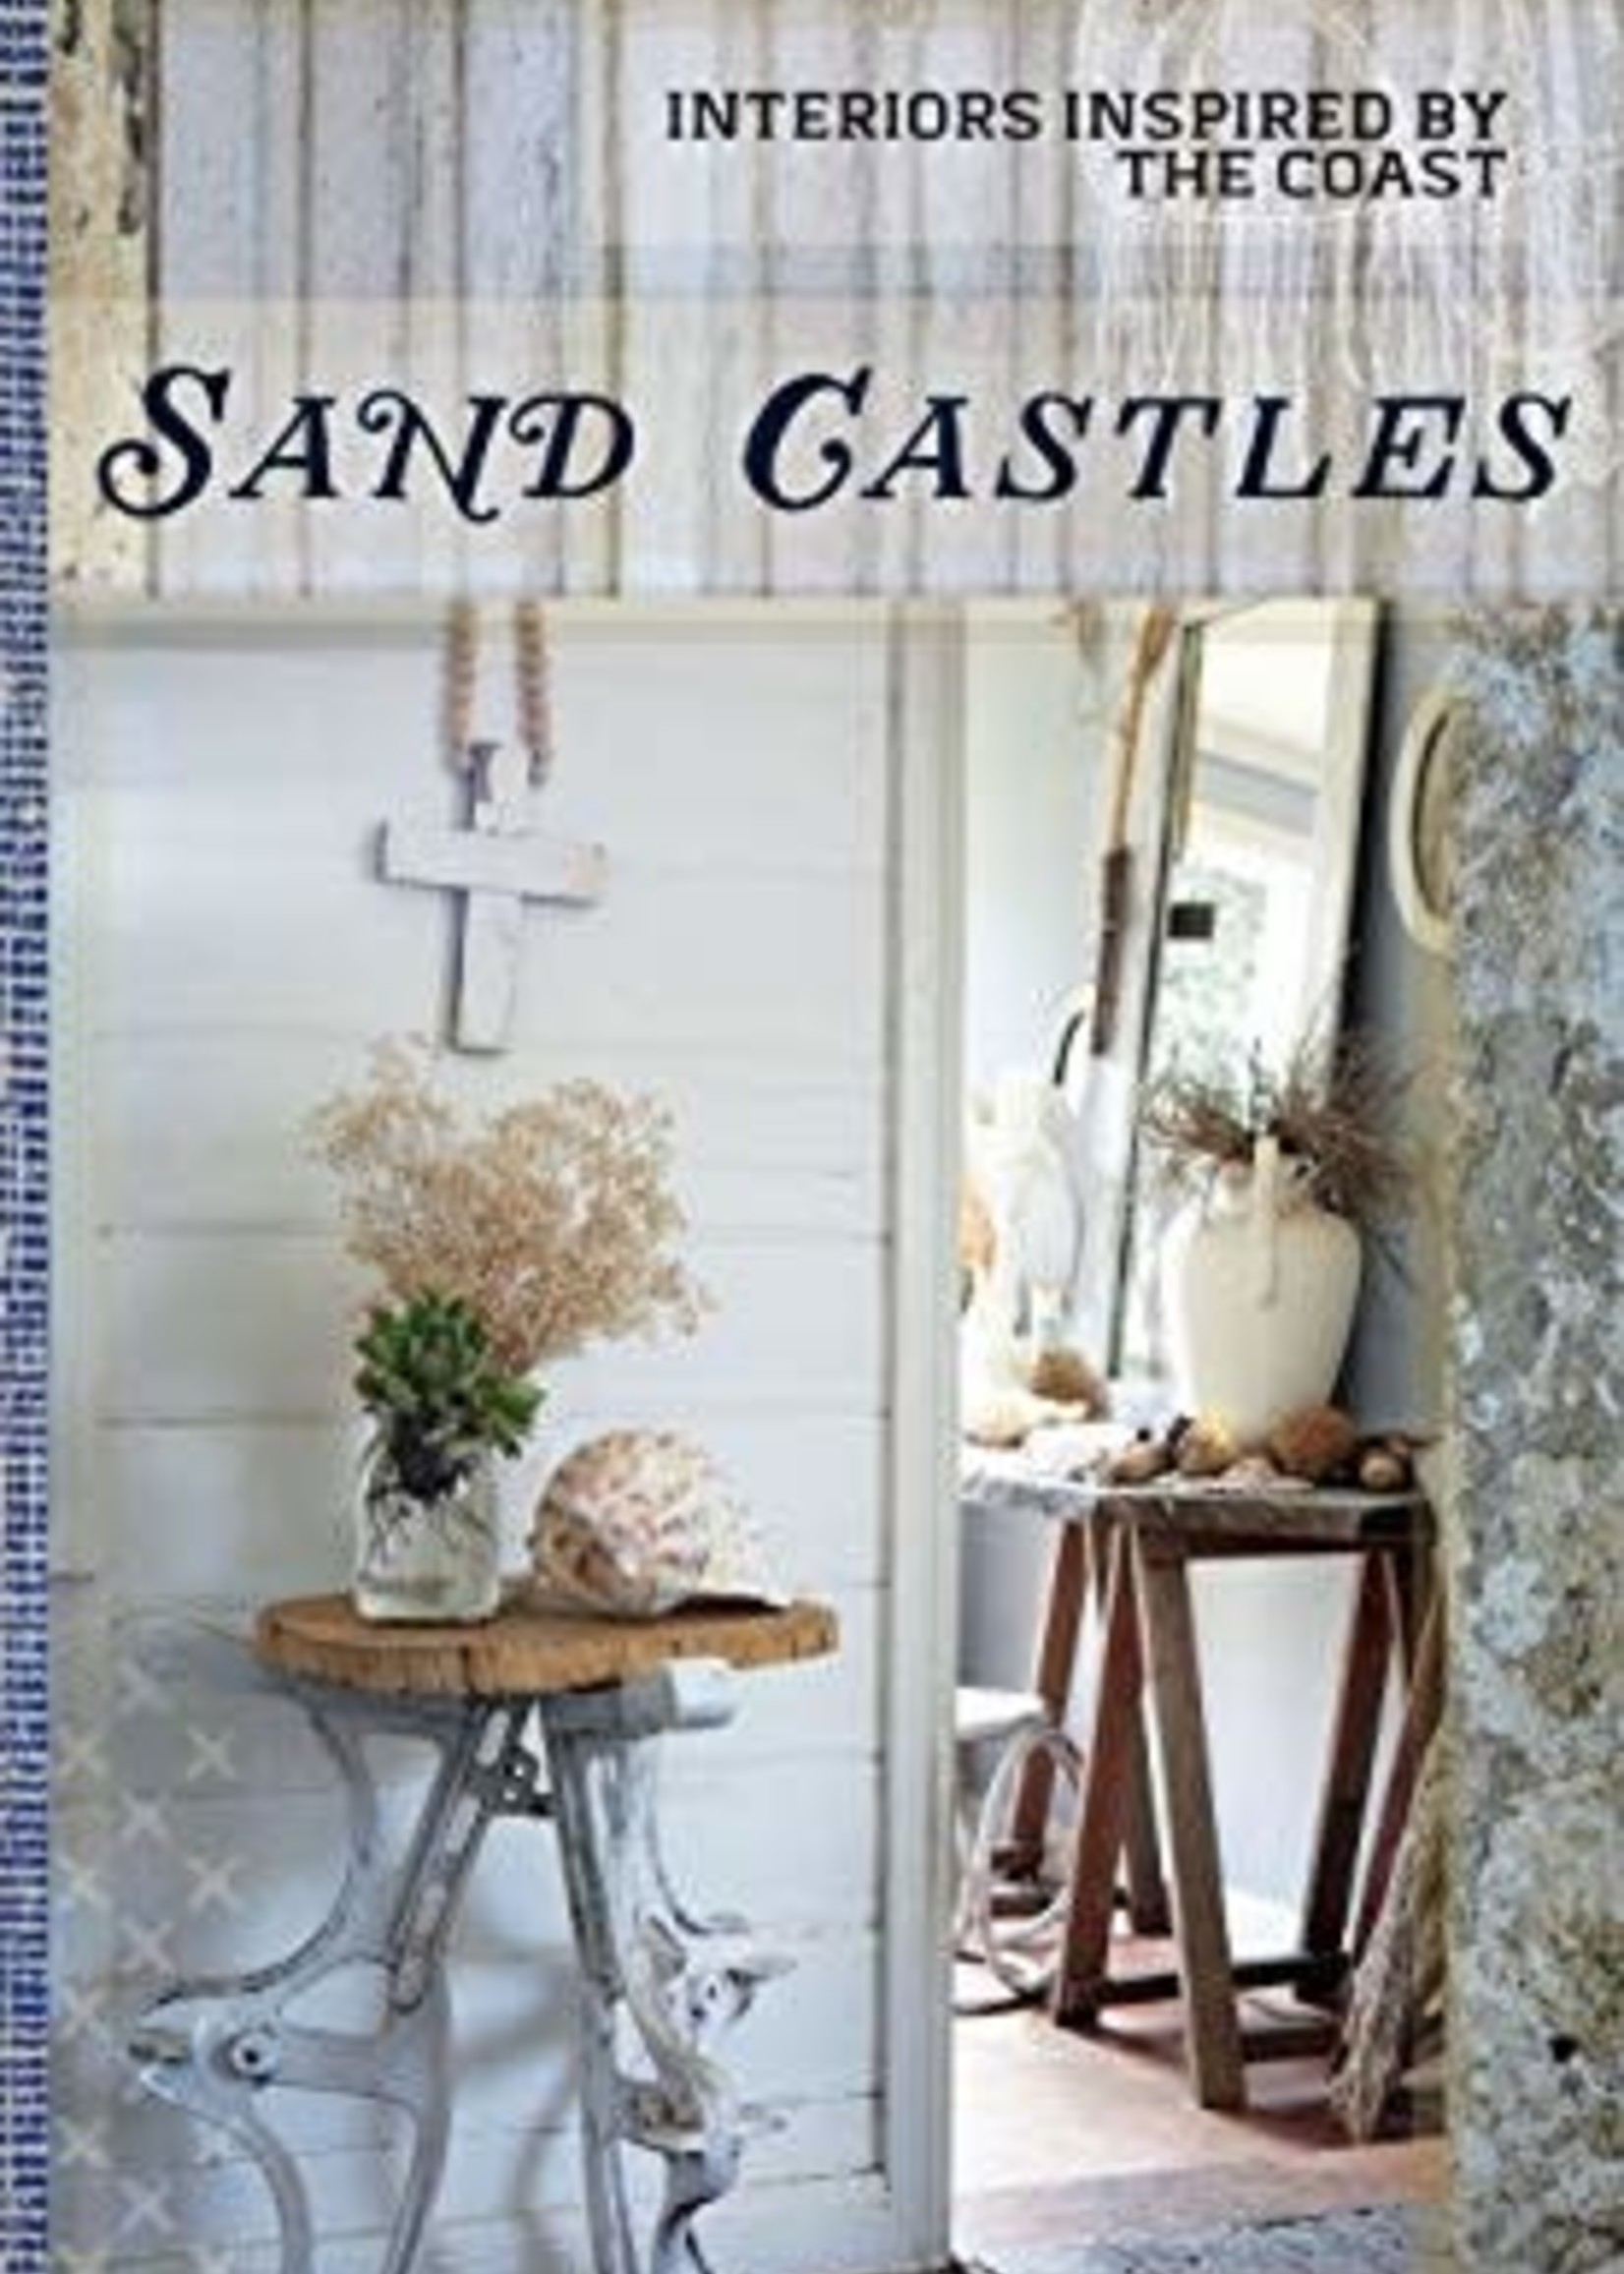 Sand Castles: Interiors Inspired by the Coast